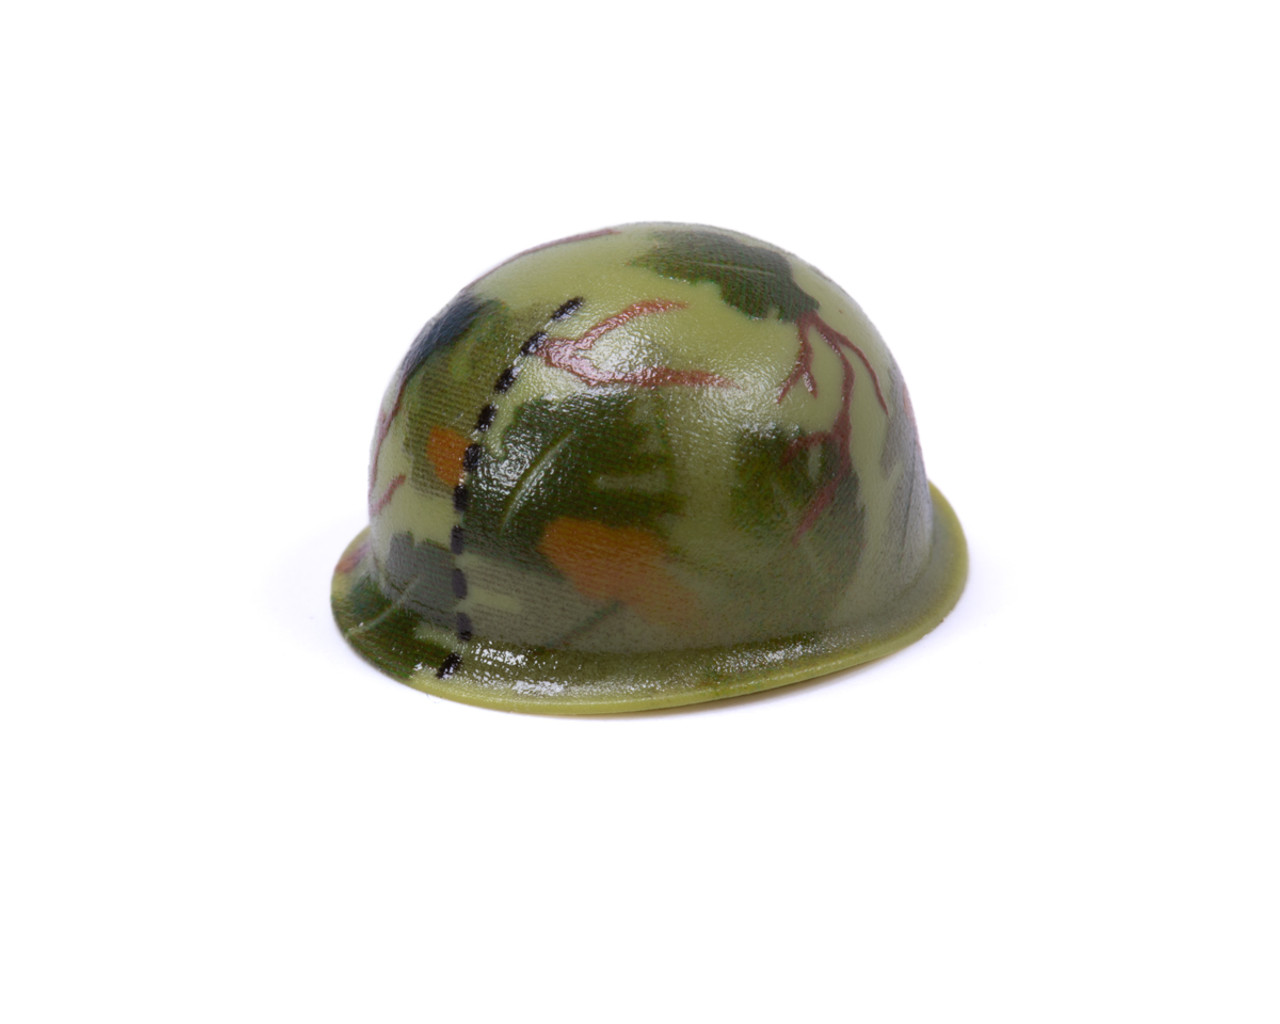 Vietnam Helmet with Mitchell Pattern